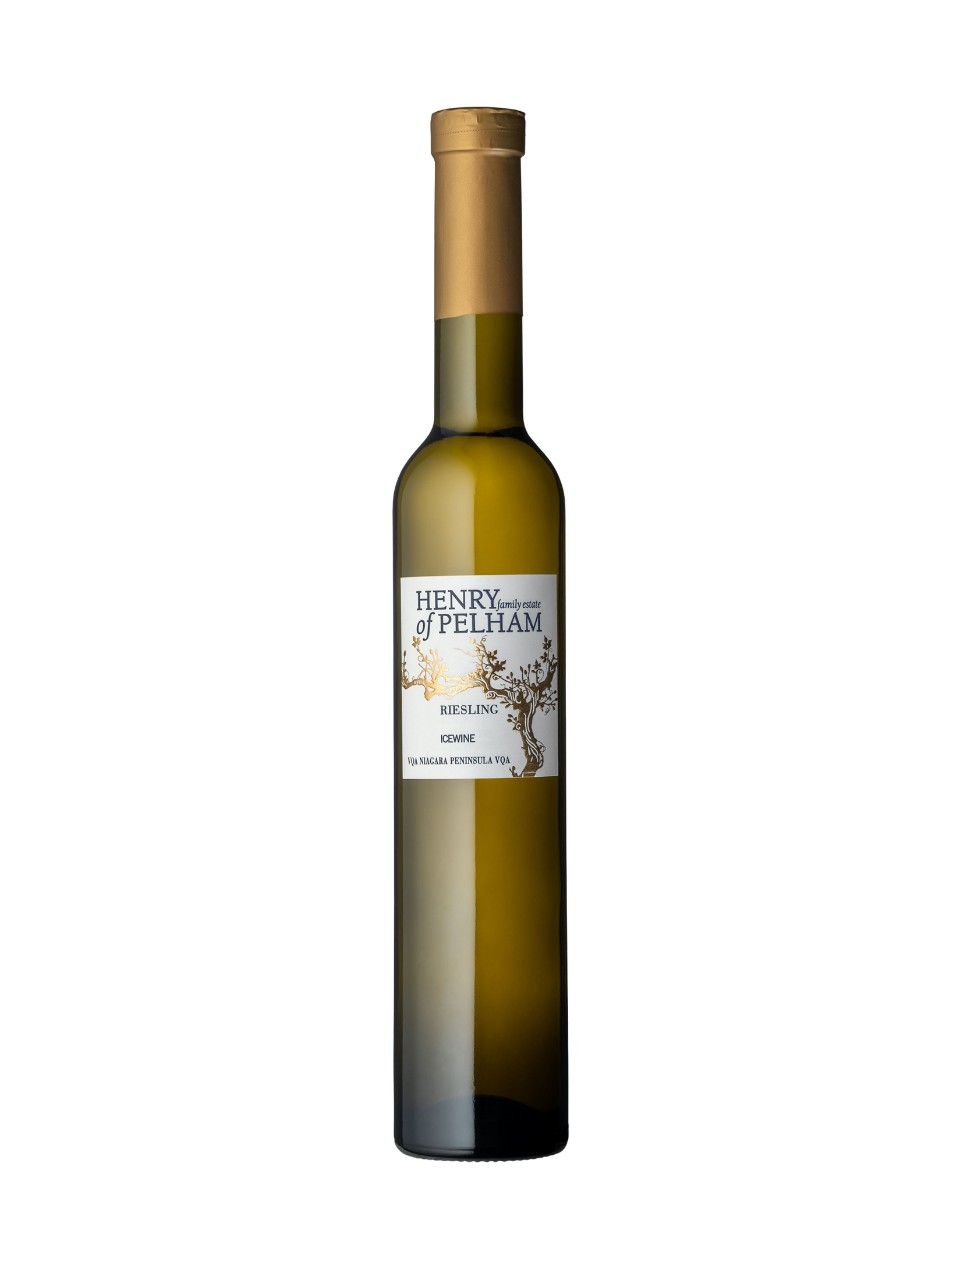 Henry of Pelham Riesling Icewine from LCBO